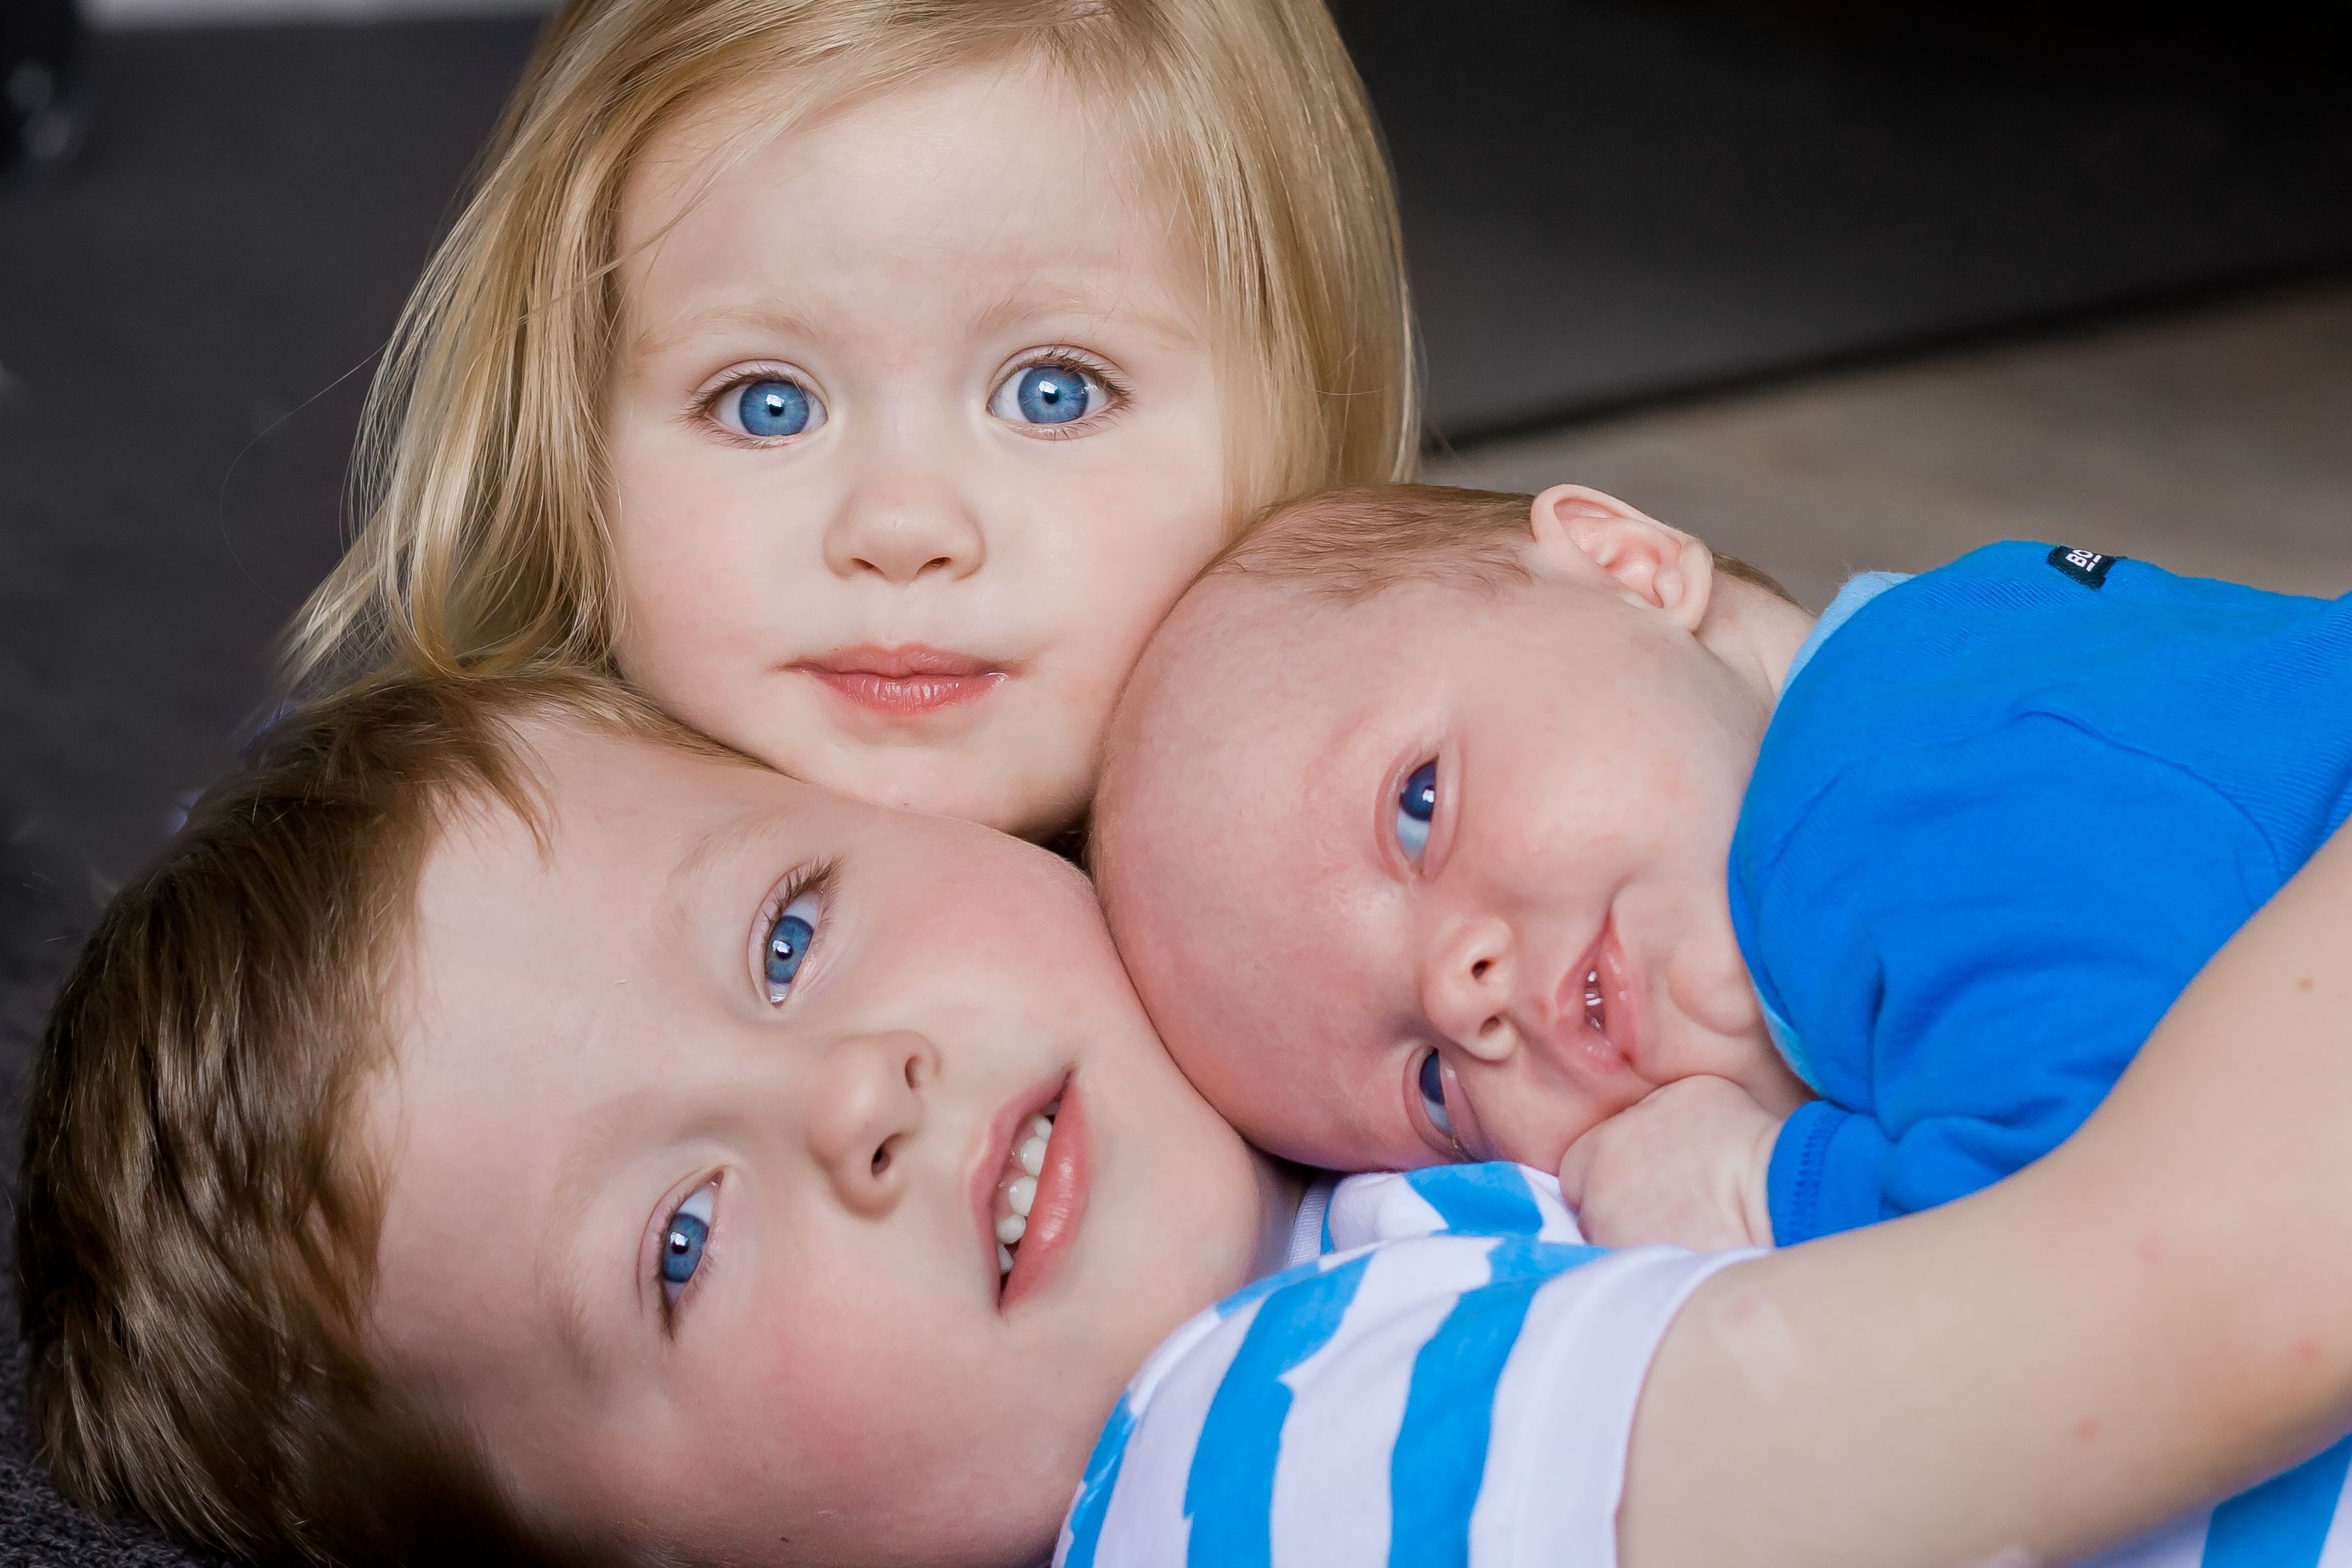 Great sibling pose - worked well